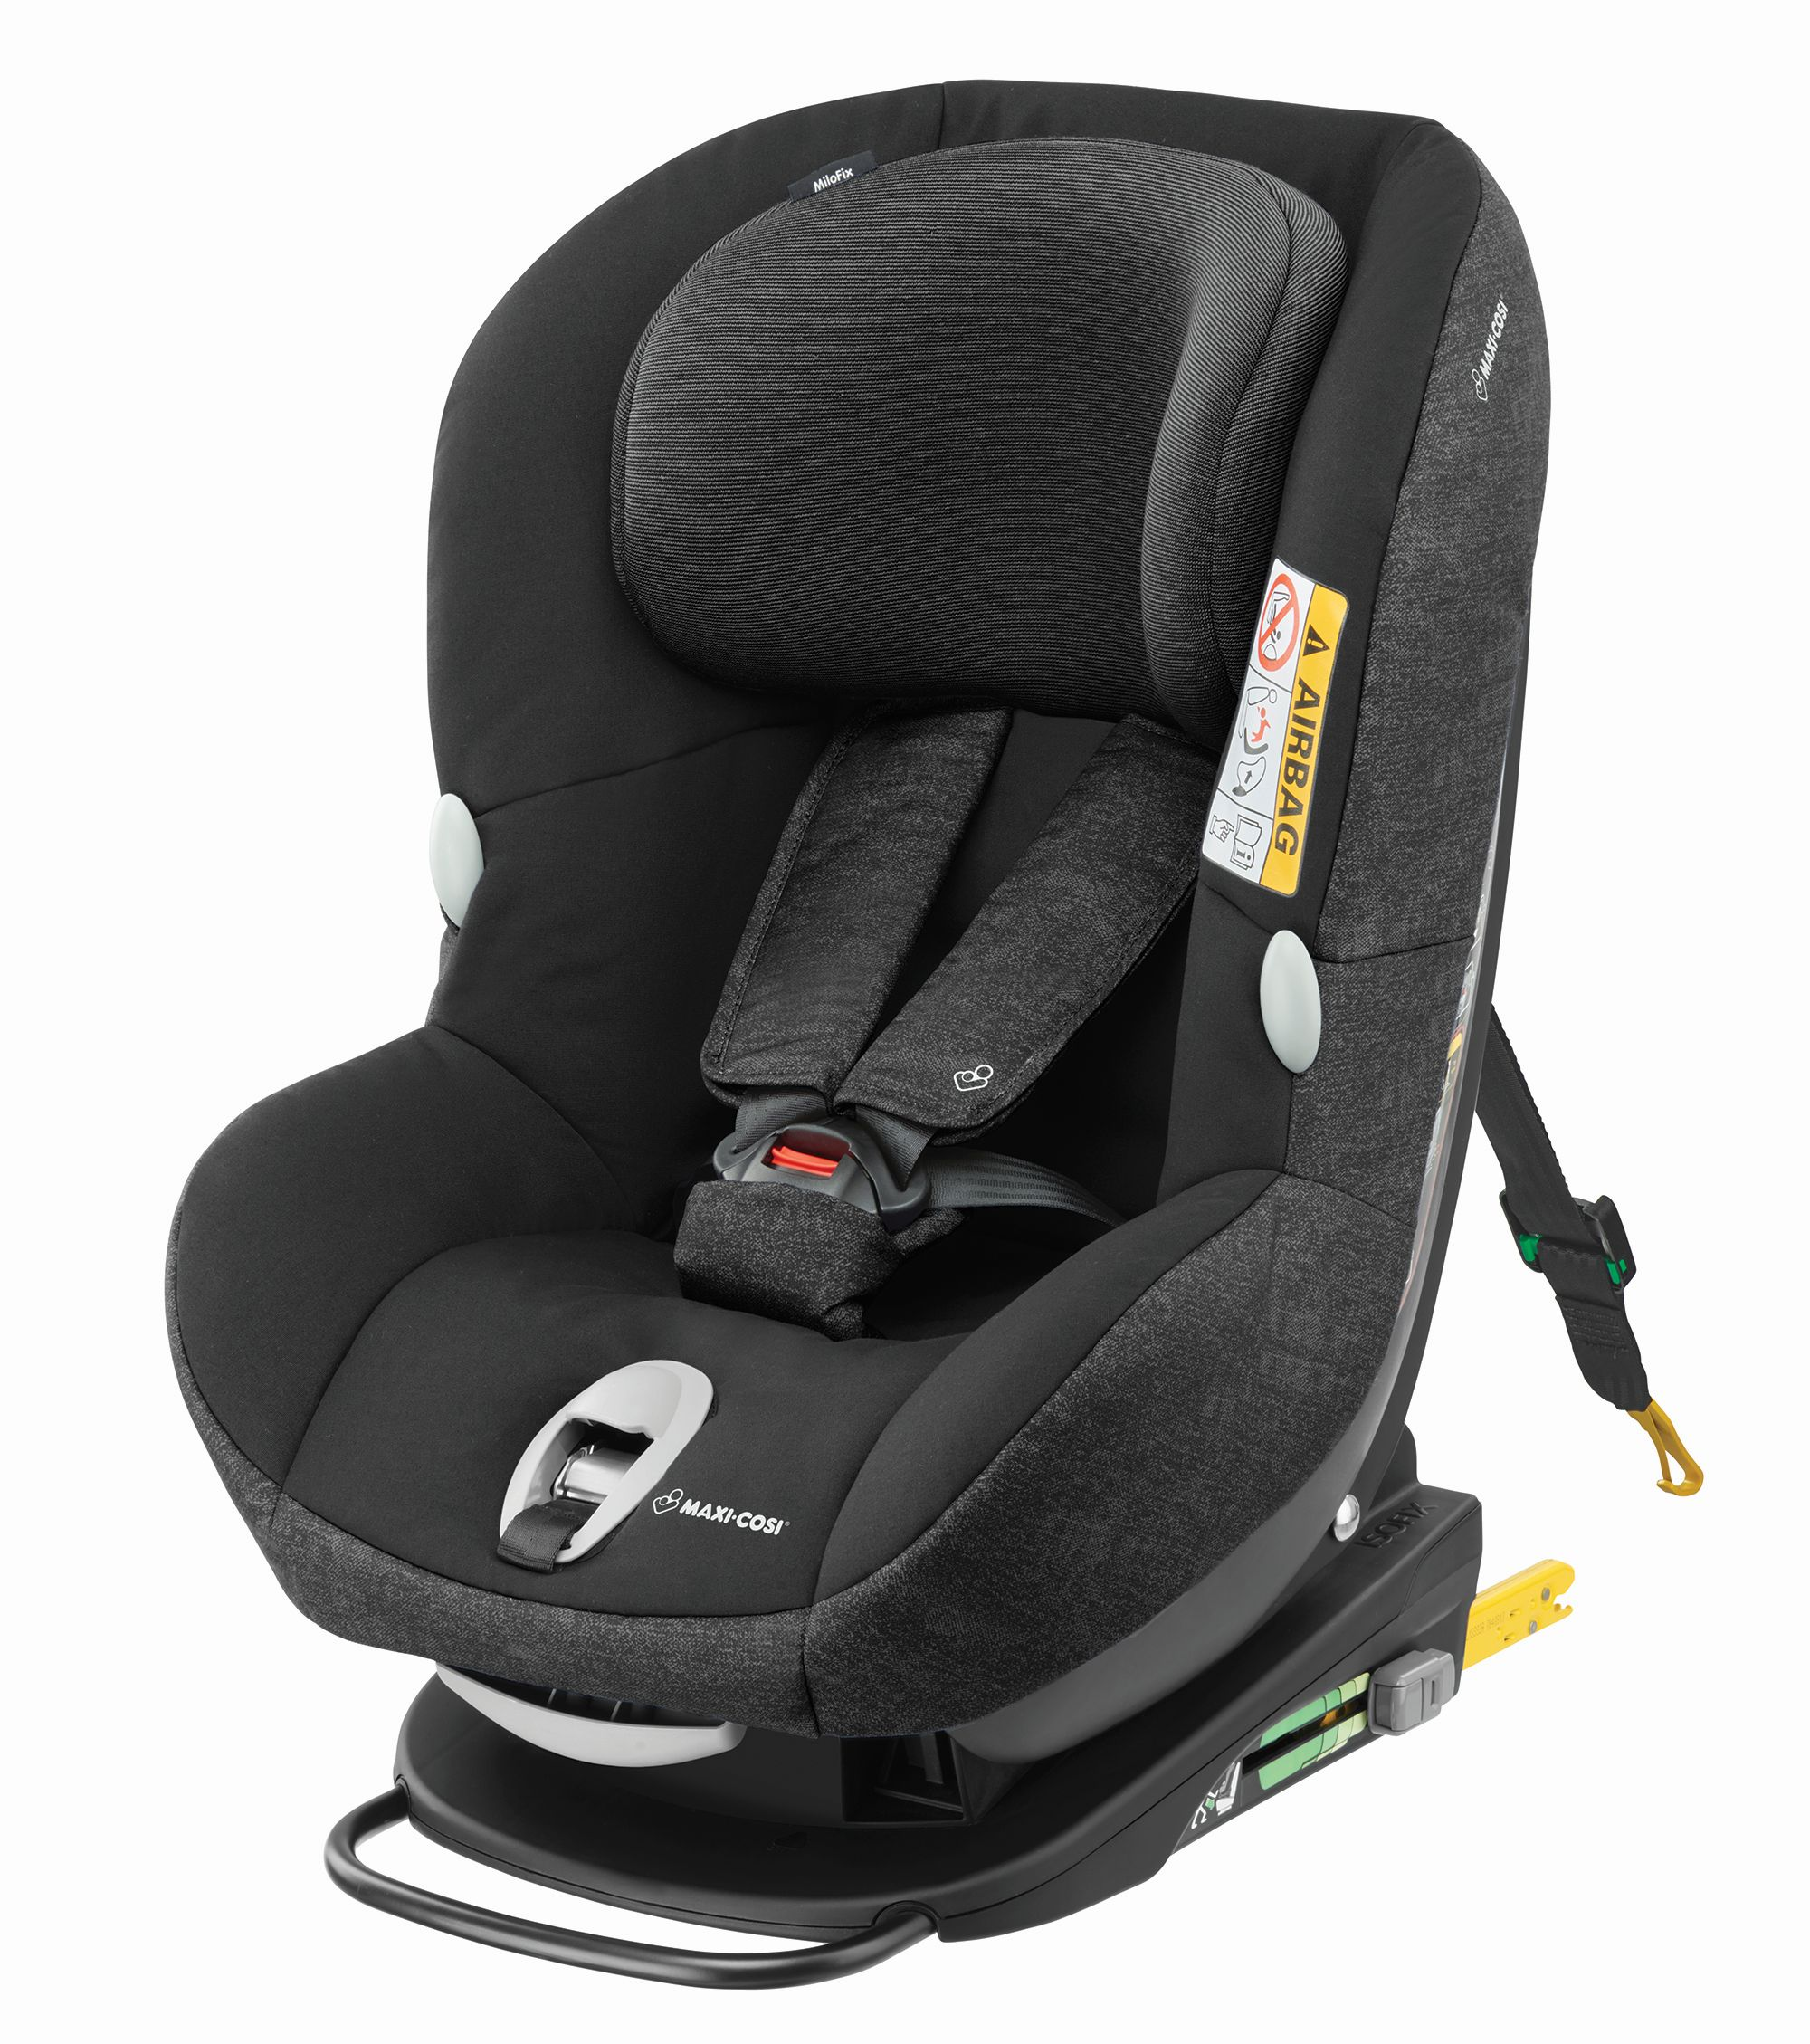 Maxi-Cosi Child Car Seat MiloFix 2020